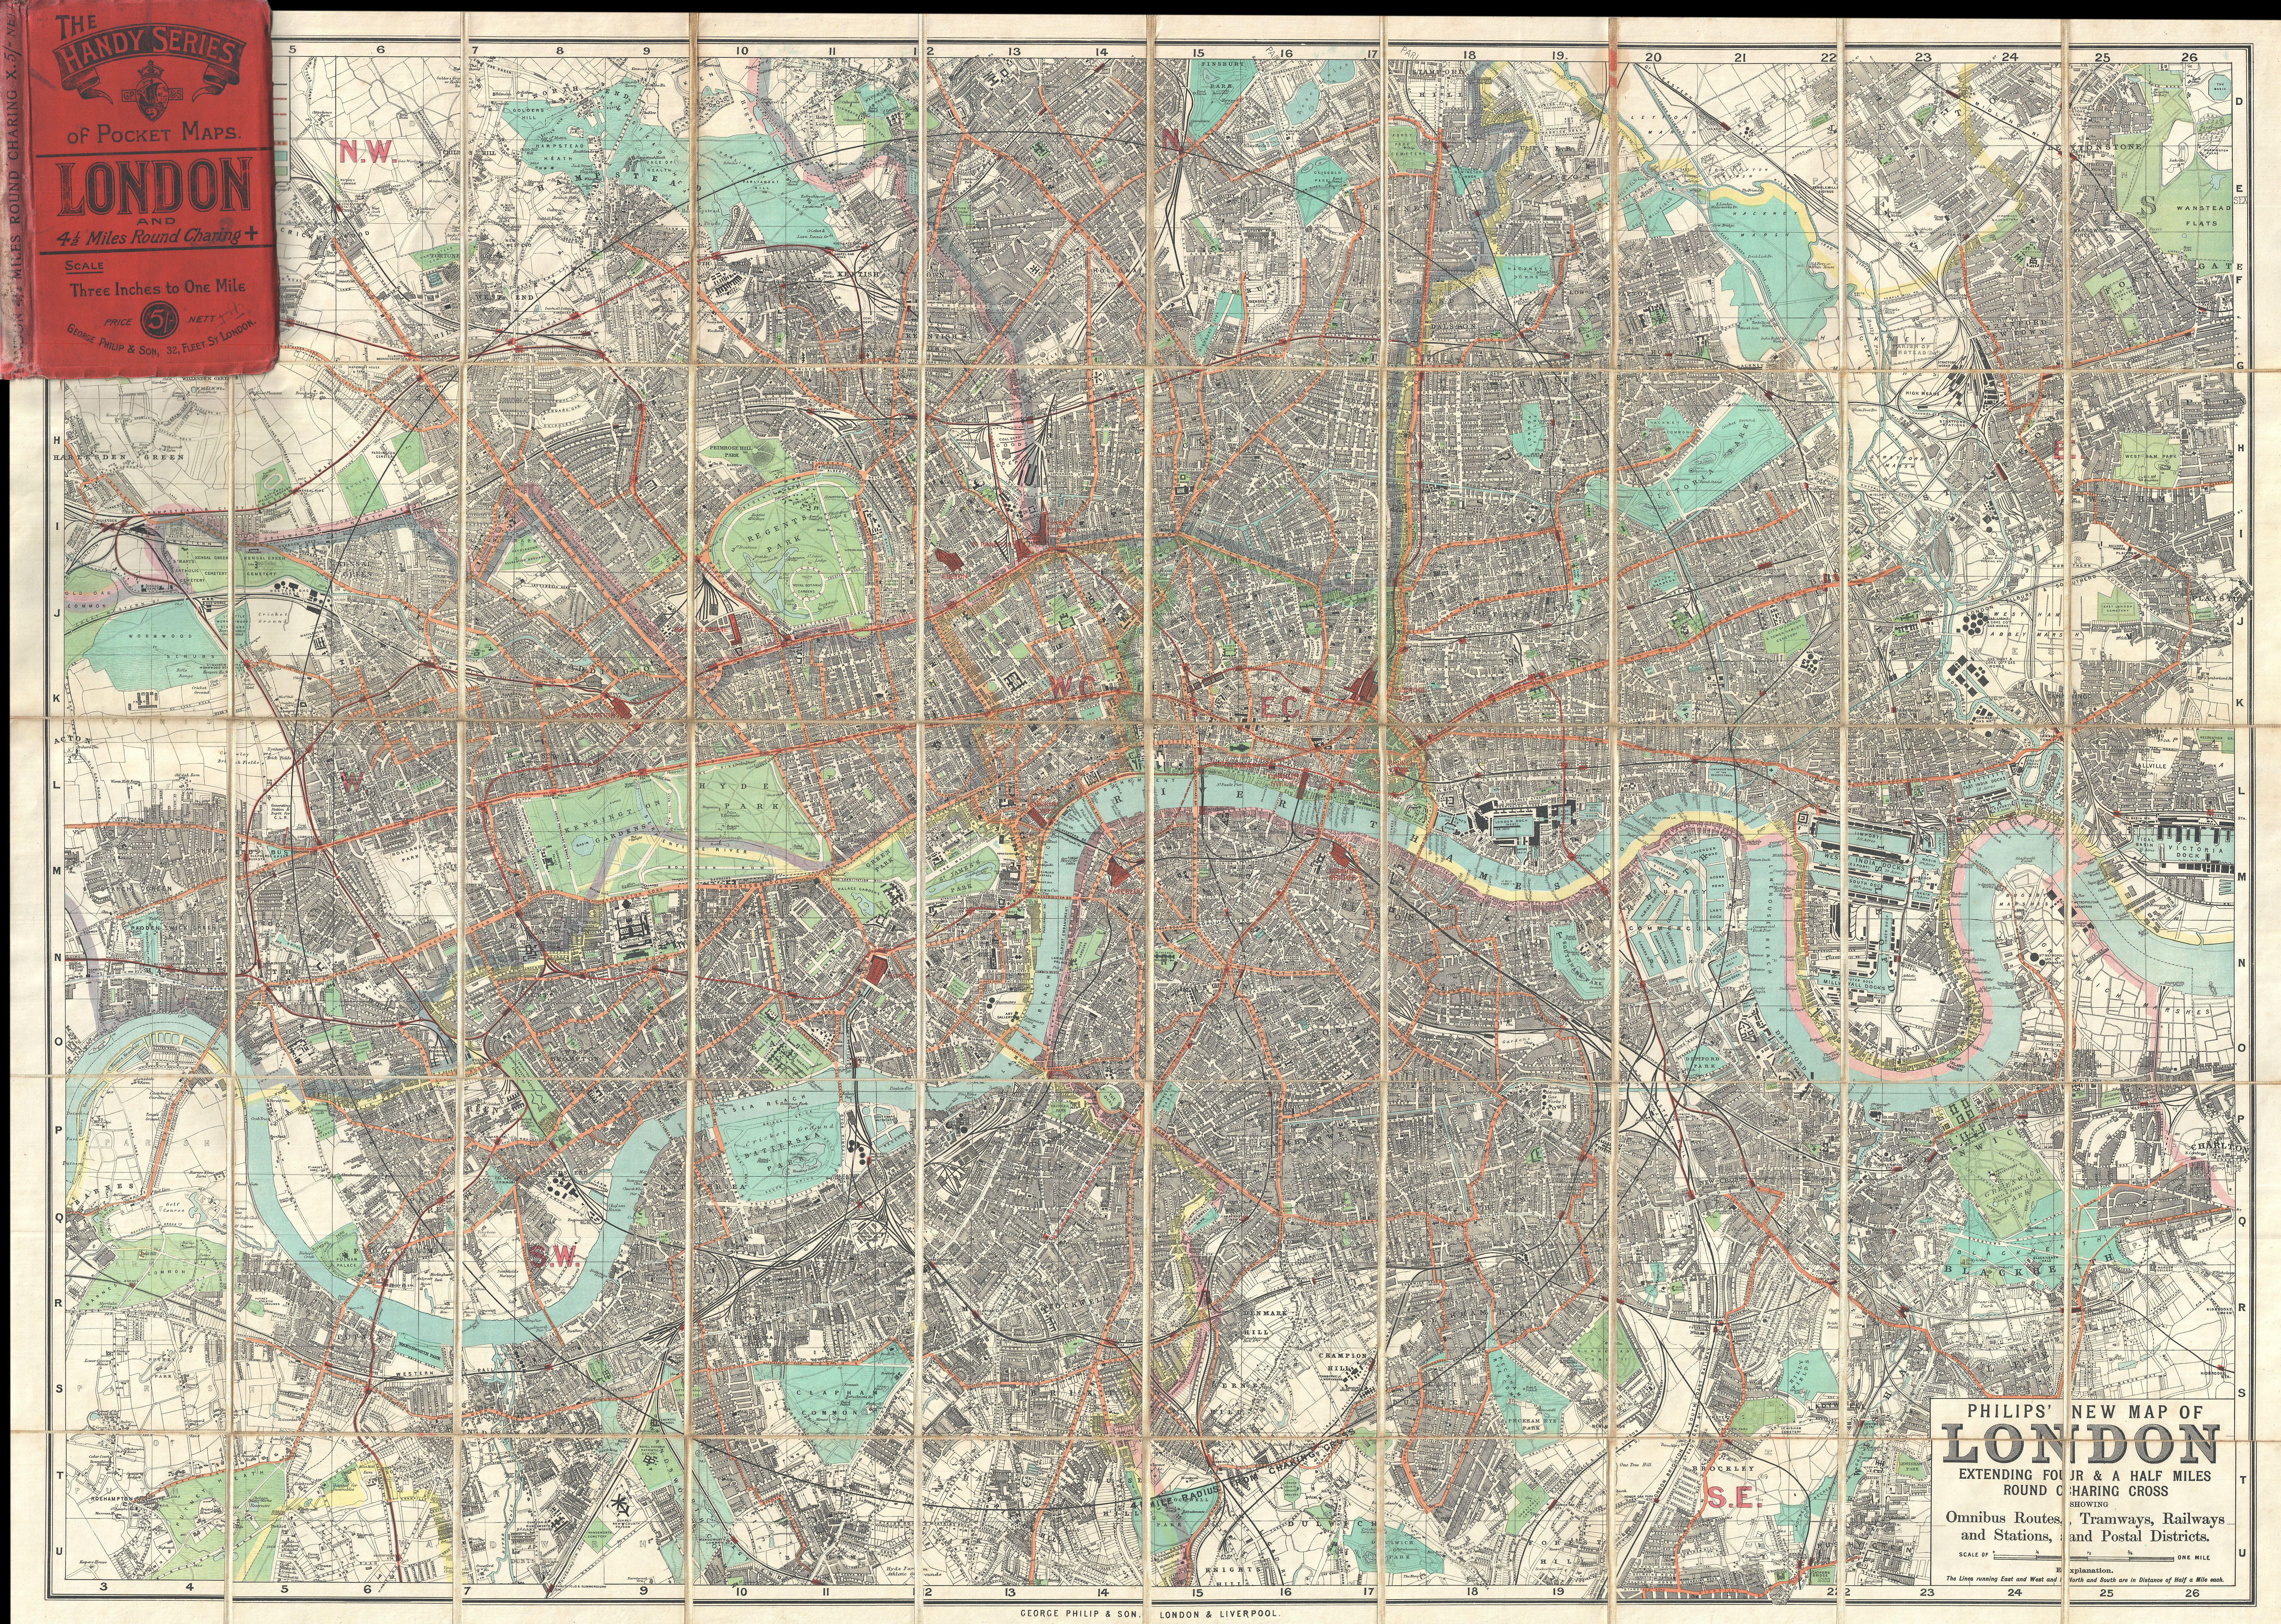 England And London Map.File 1895 Philip Pocket Map Or Plan Of London England